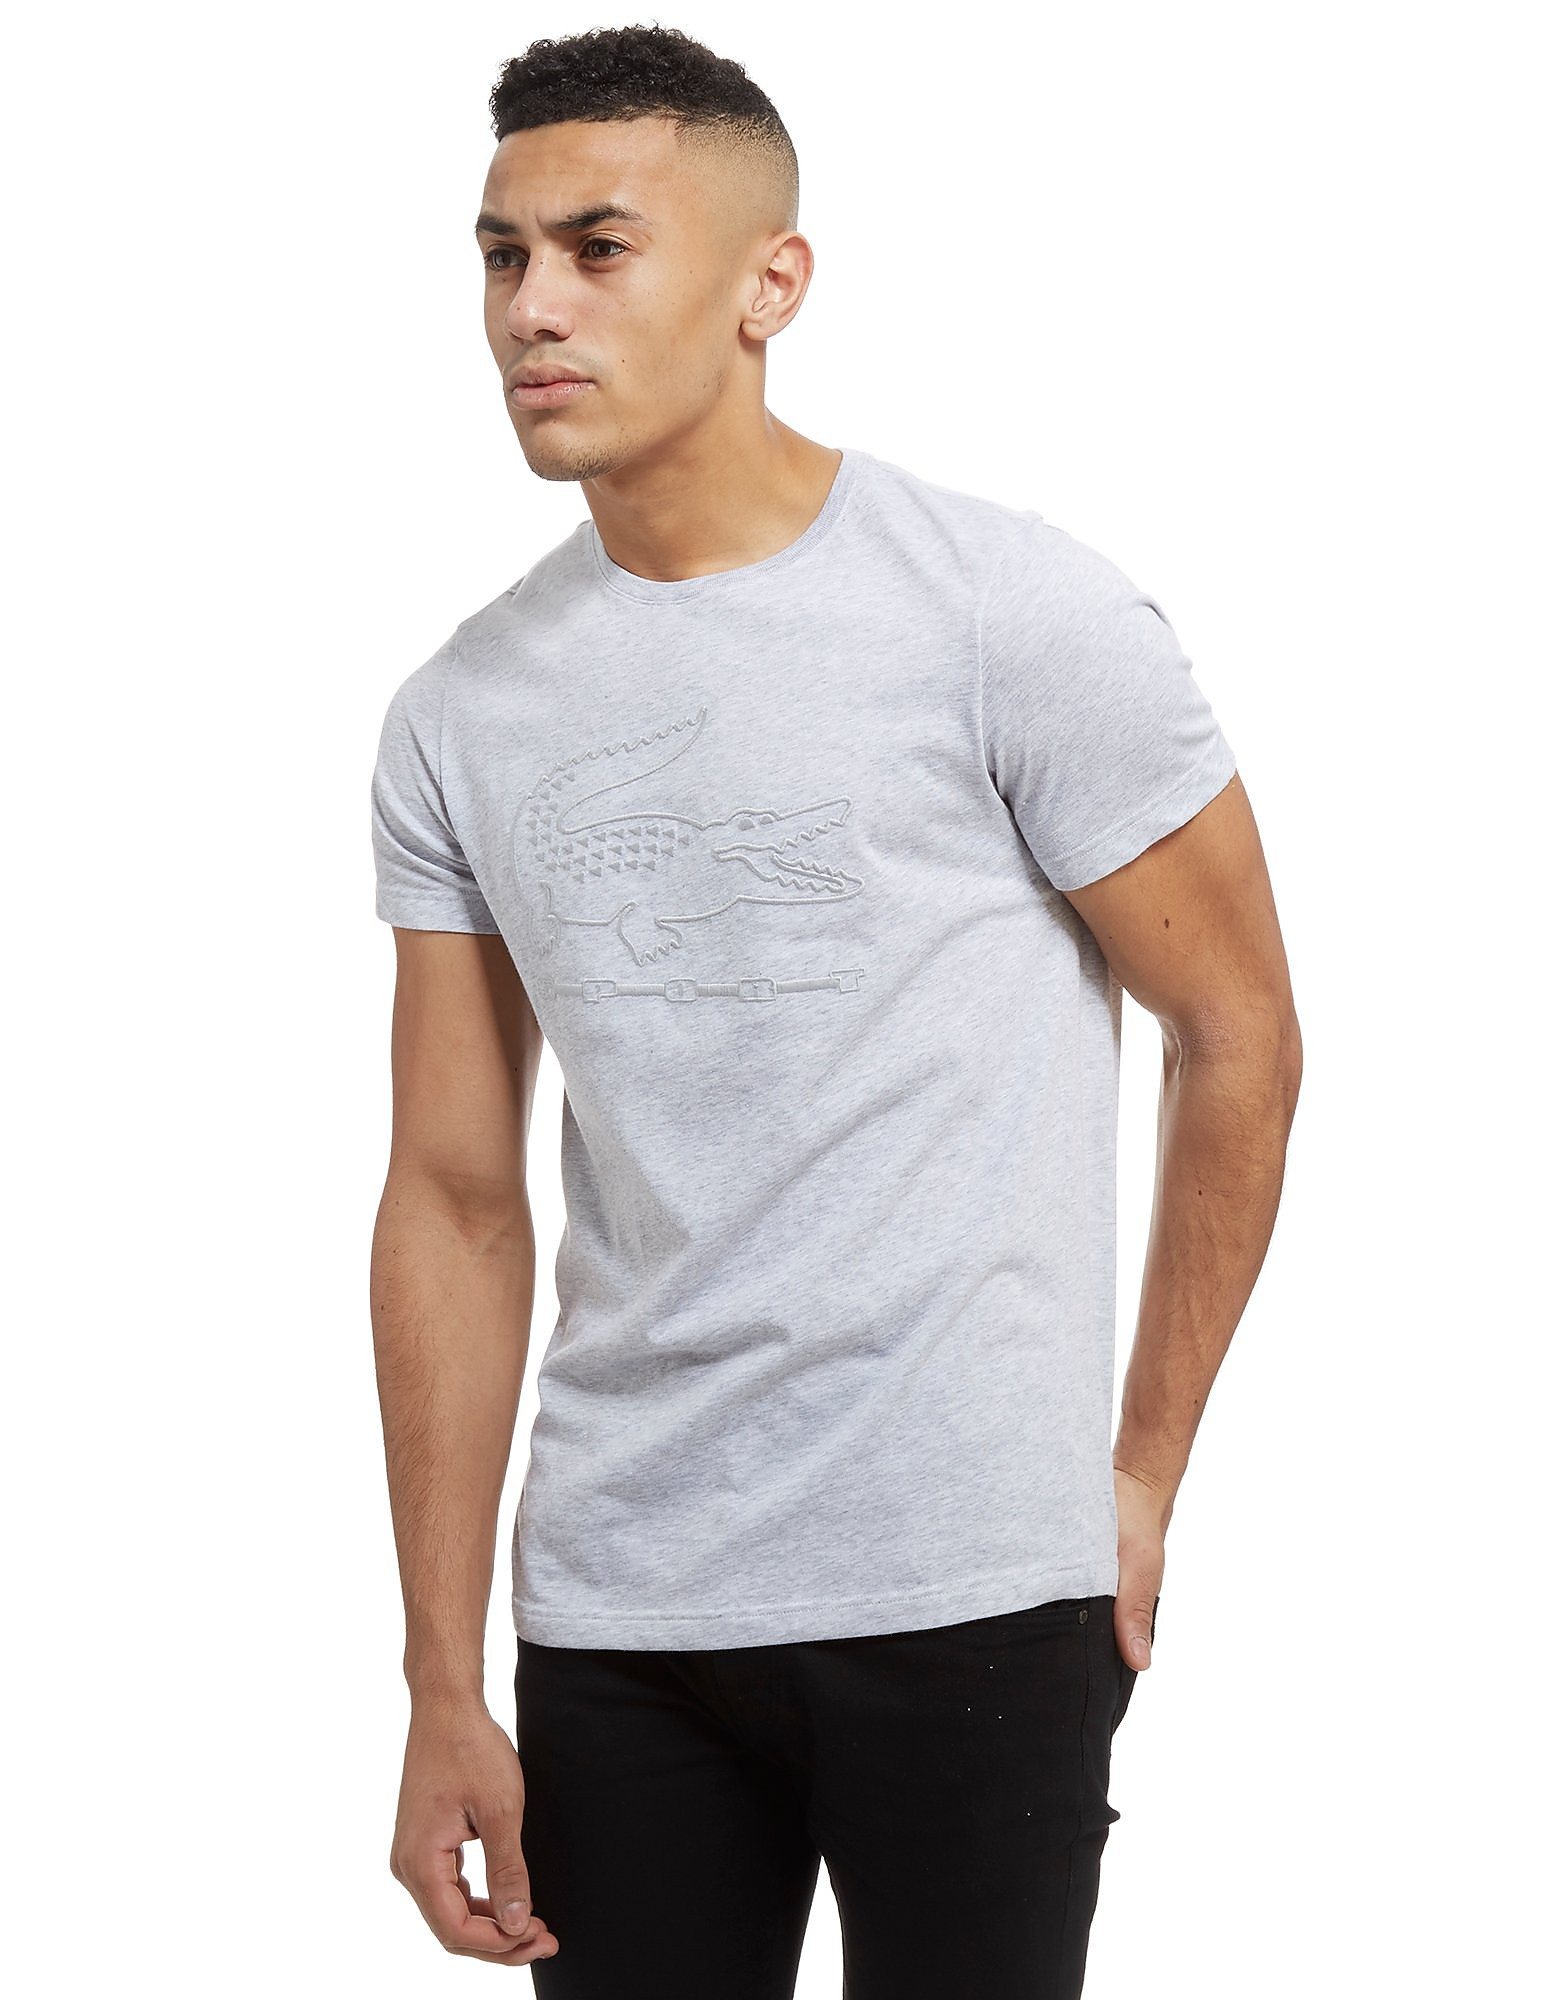 Lacoste Embossed Croc T-Shirt